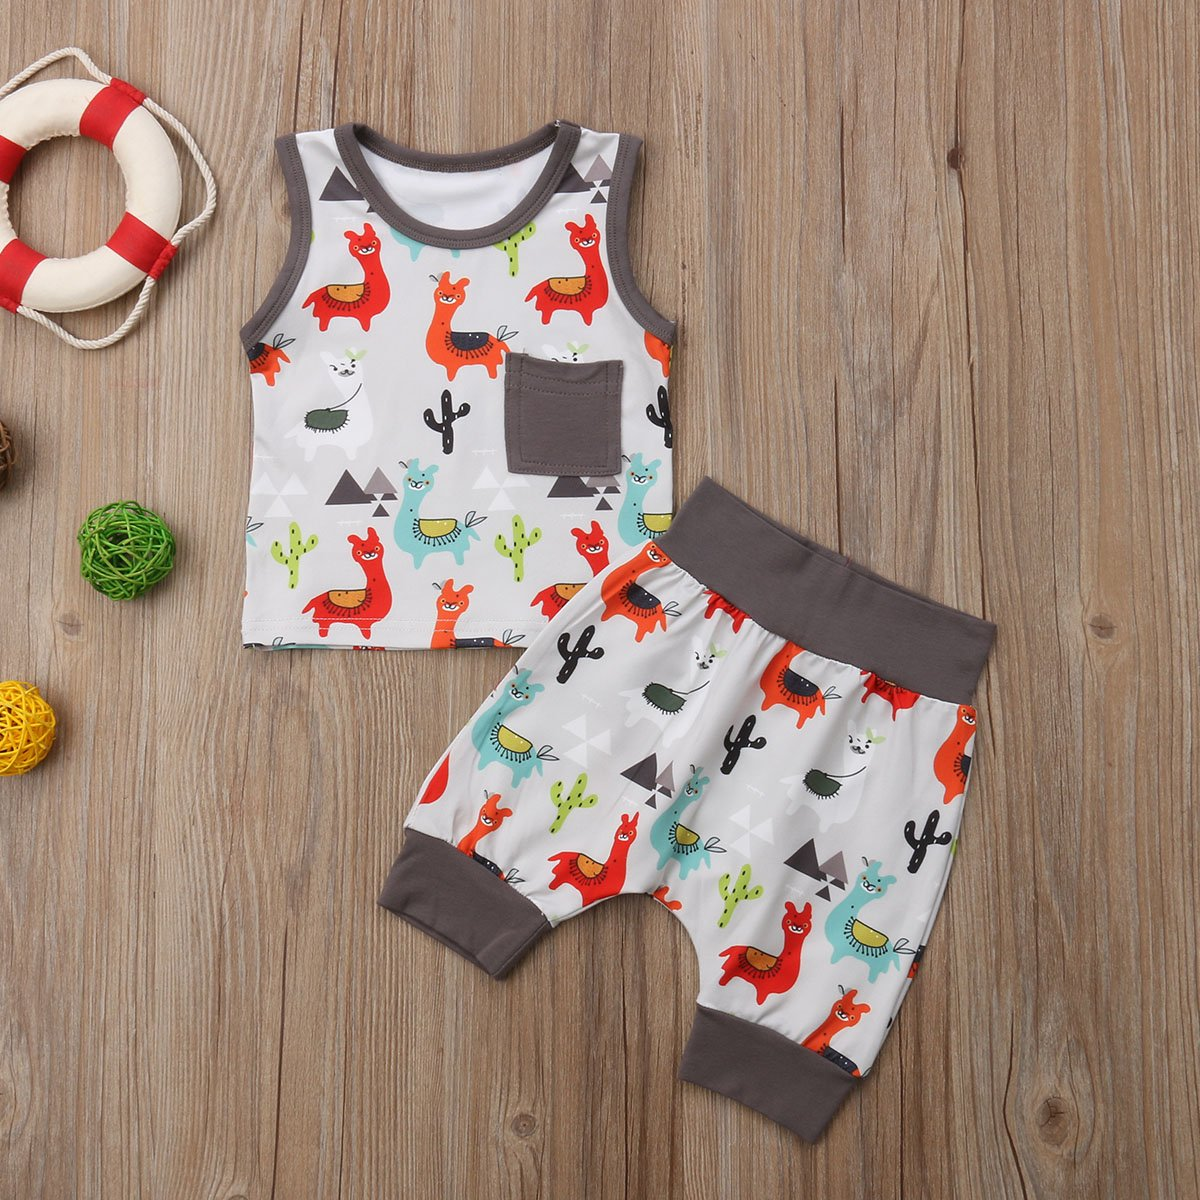 YAZAD Newborn Infant Toddler Baby Kid Boy Colourful Alpaca Tank Tops Sleeveless Vest Cute Shorts Pants Summer Outfit